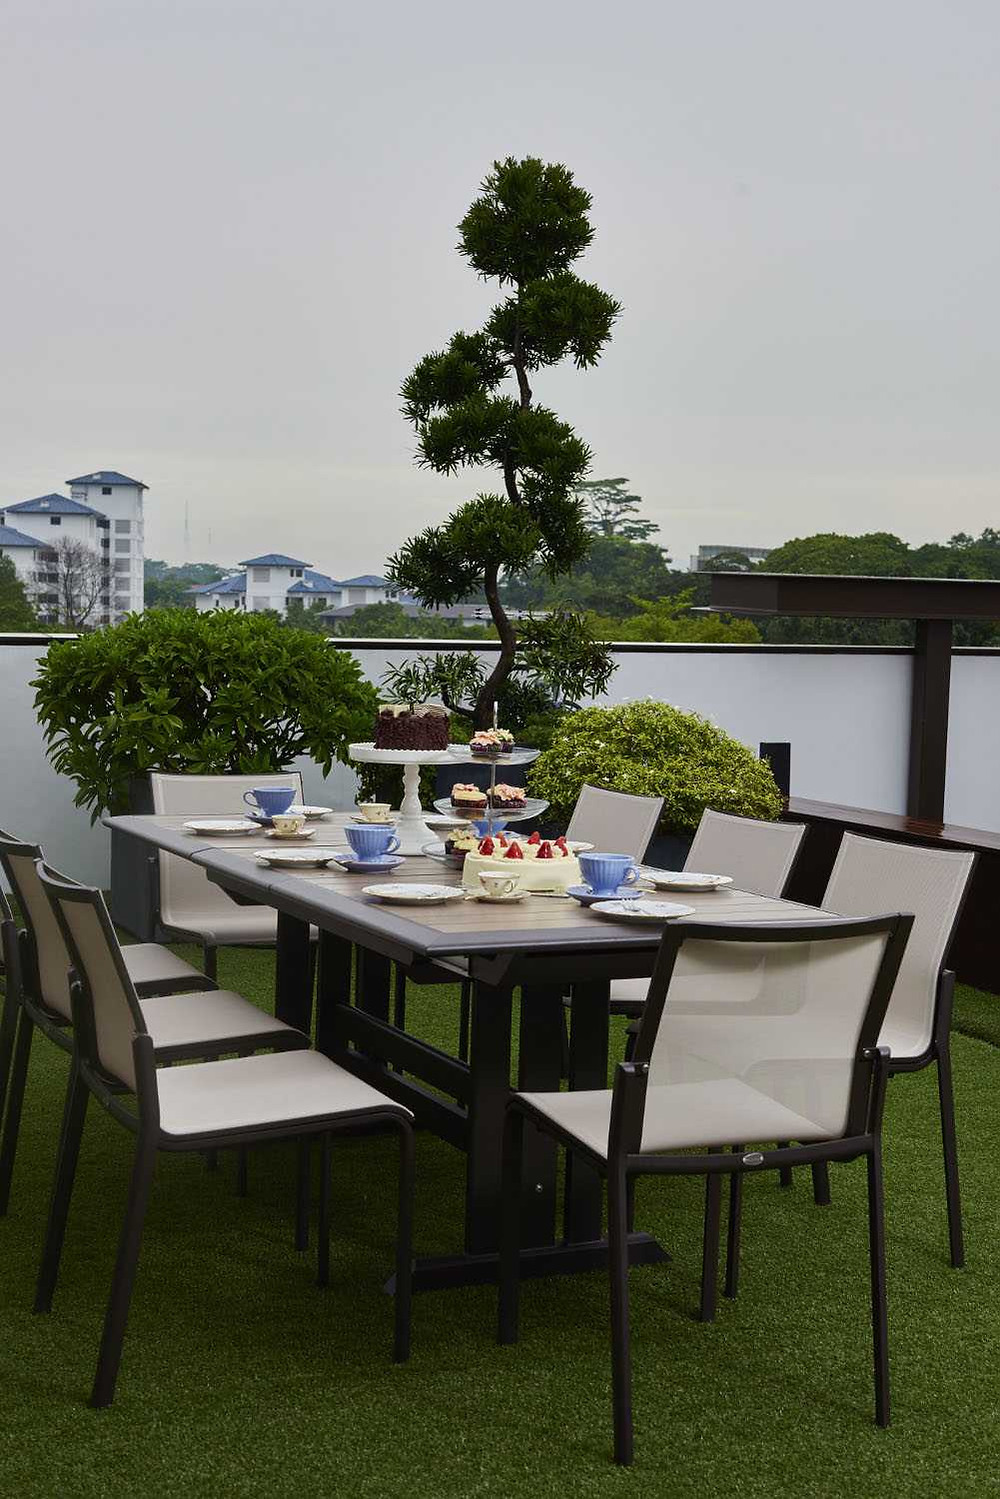 Japanese-Inspired Outdoor Dining Good Class Bungalow  Natural stone Exotic stones Yeni Grey Magma Black granite Forest Onyx Nero Marquina Walnut Travertine Palisandra Gold Shanxi Black Singapore  Cable Road Leedon Park Chestnut Crescent District 10 award winning residential interior design Hotel look powder room bathroom luxurious premium high end timeless